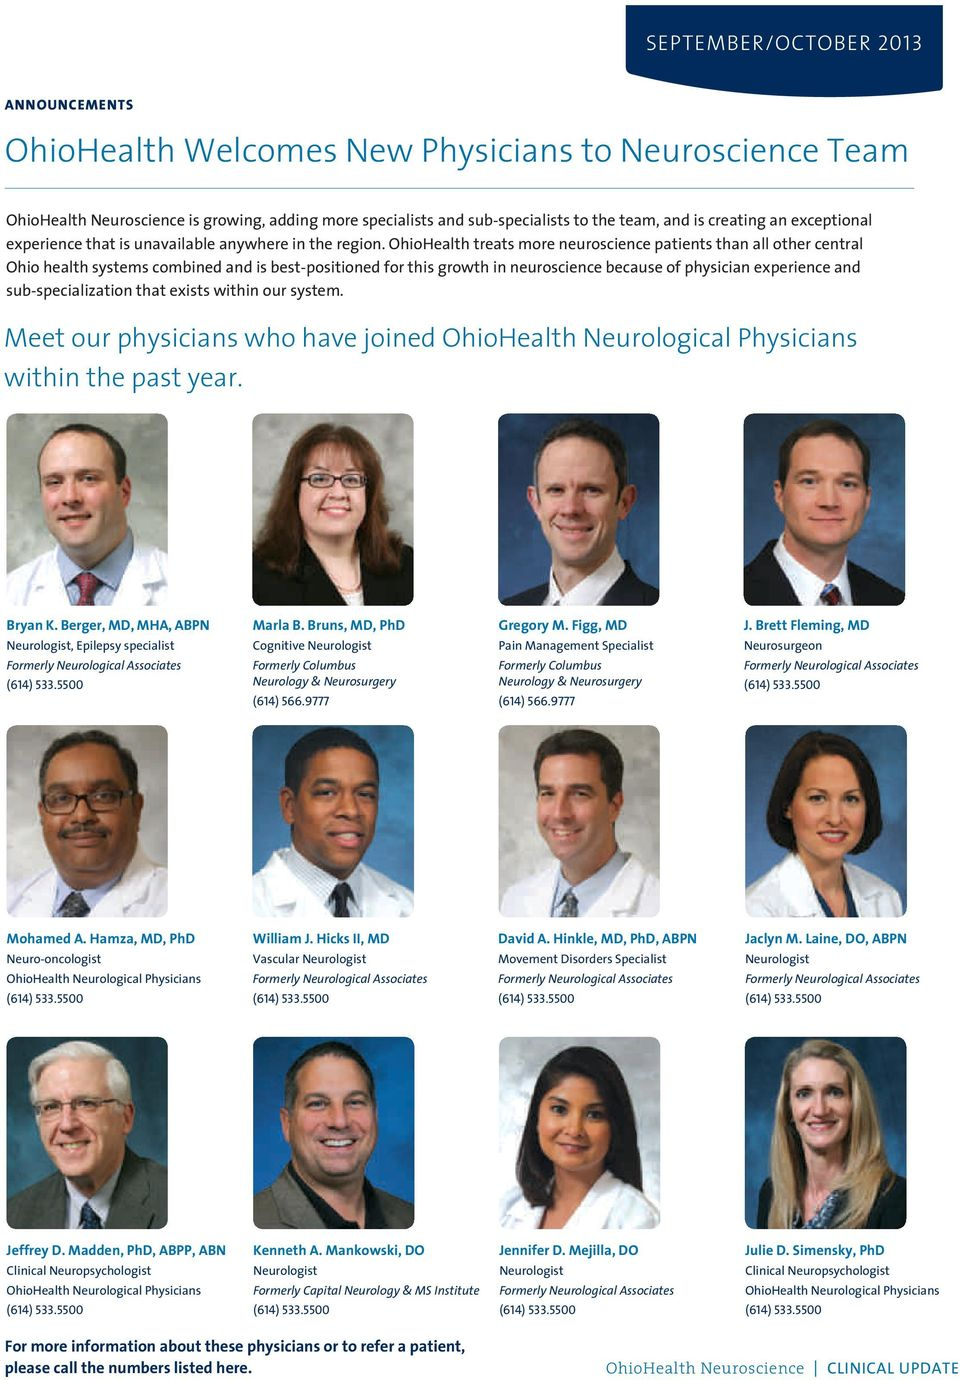 OhioHealth treats more neuroscience patients than all other central Ohio health systems combined and is best-positioned for this growth in neuroscience because of physician experience and